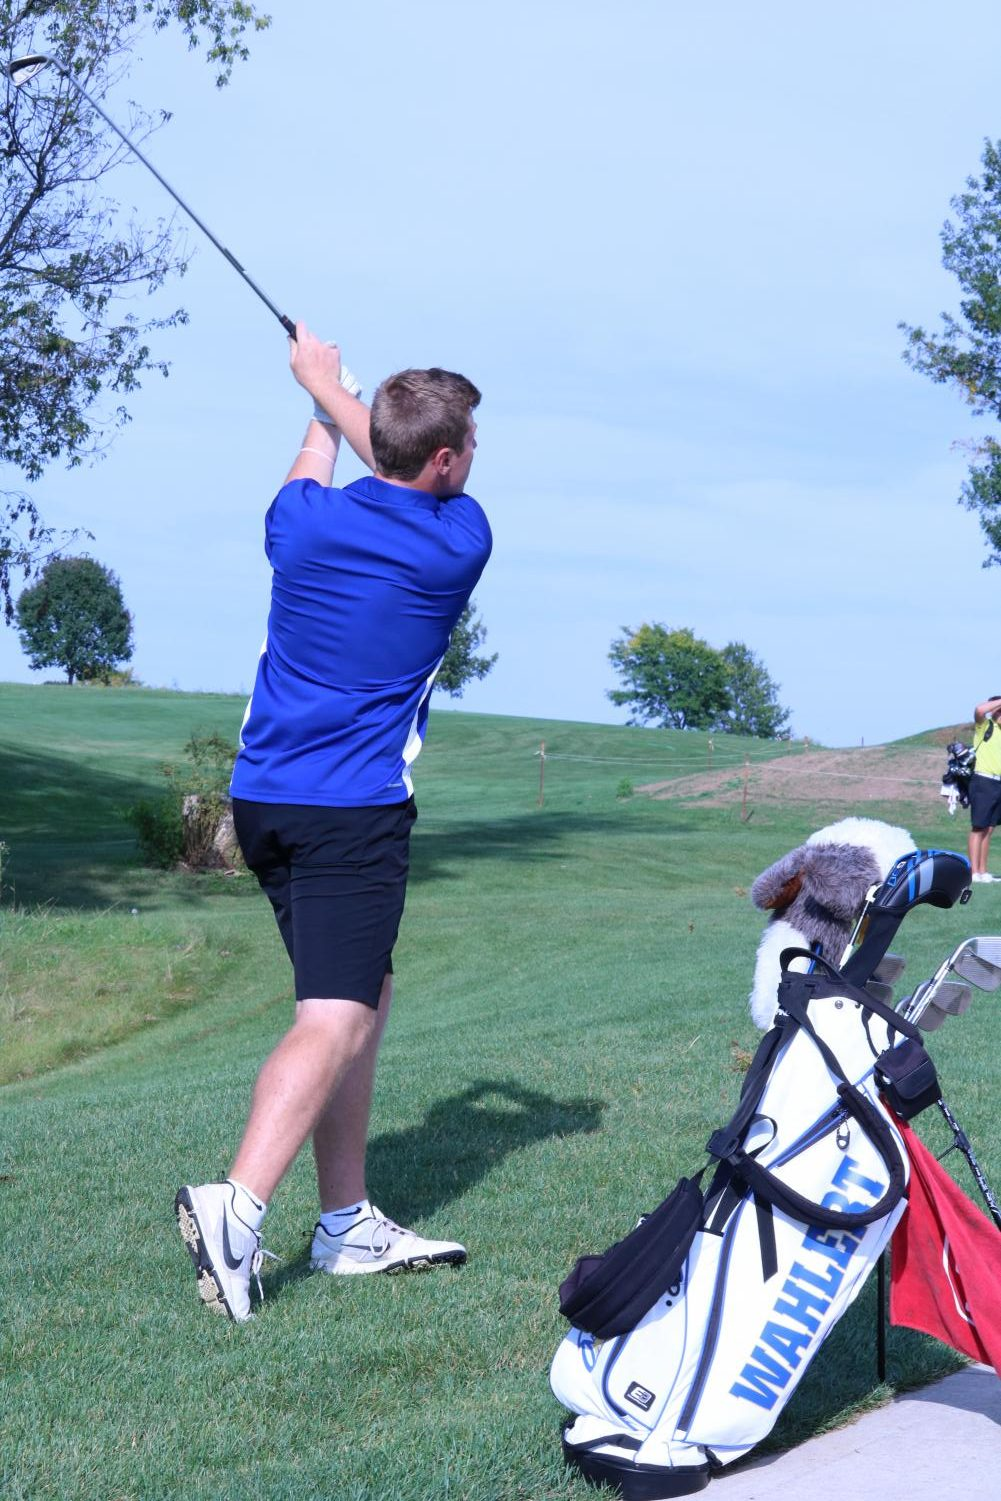 Craig Collins, '18, competes on the golf team. Collins led his team to state this season.